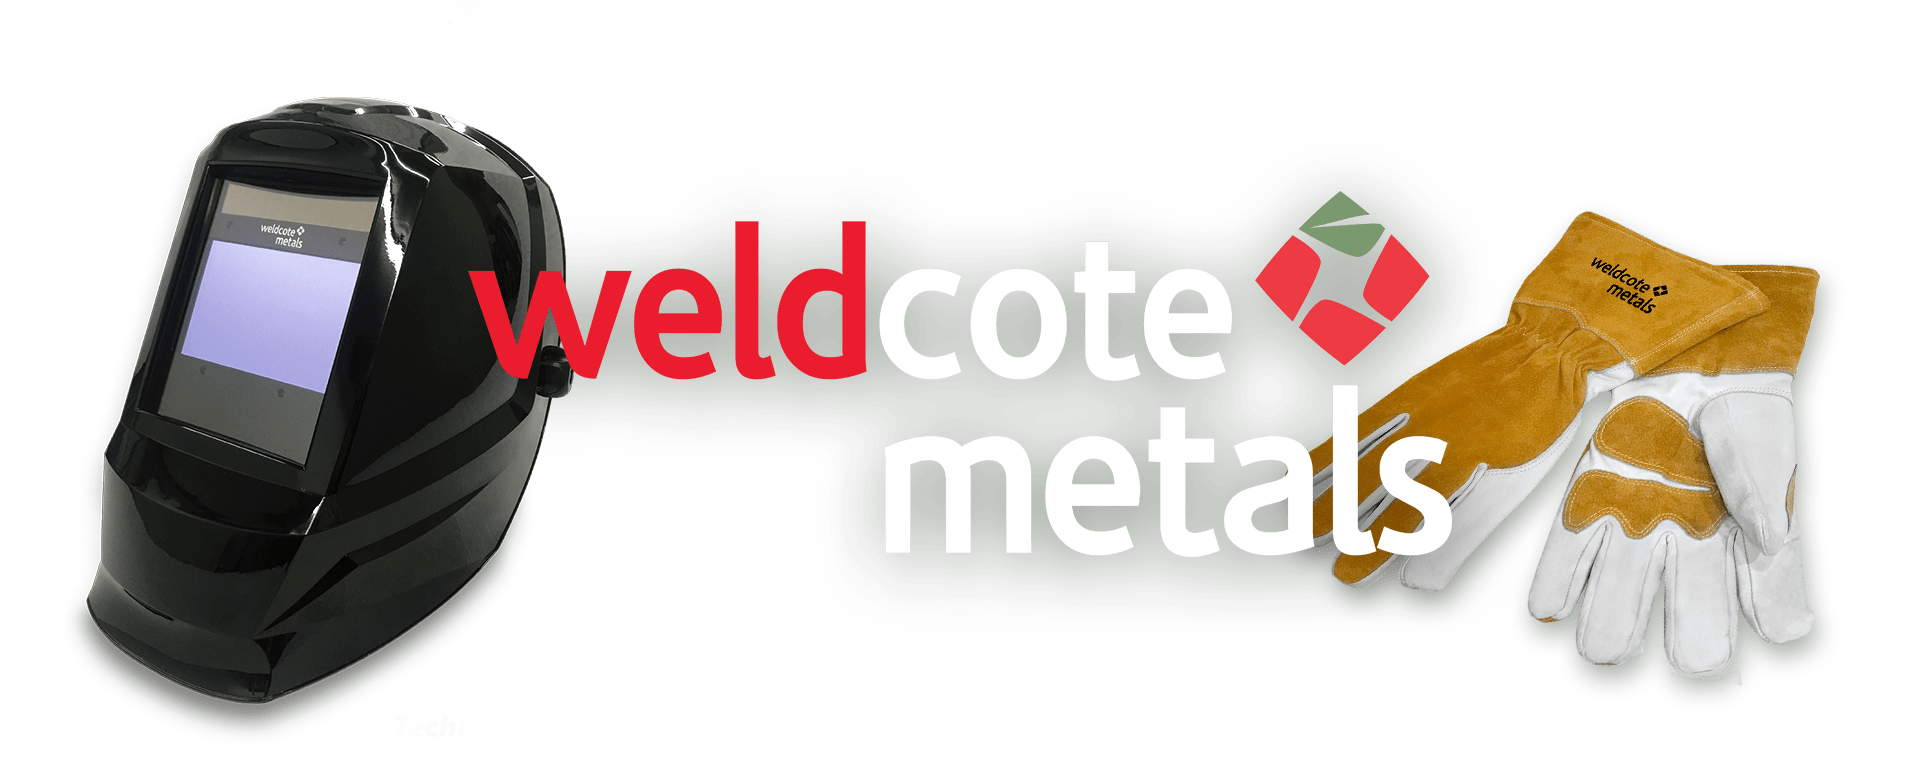 BPATTS - Weldcote Metals